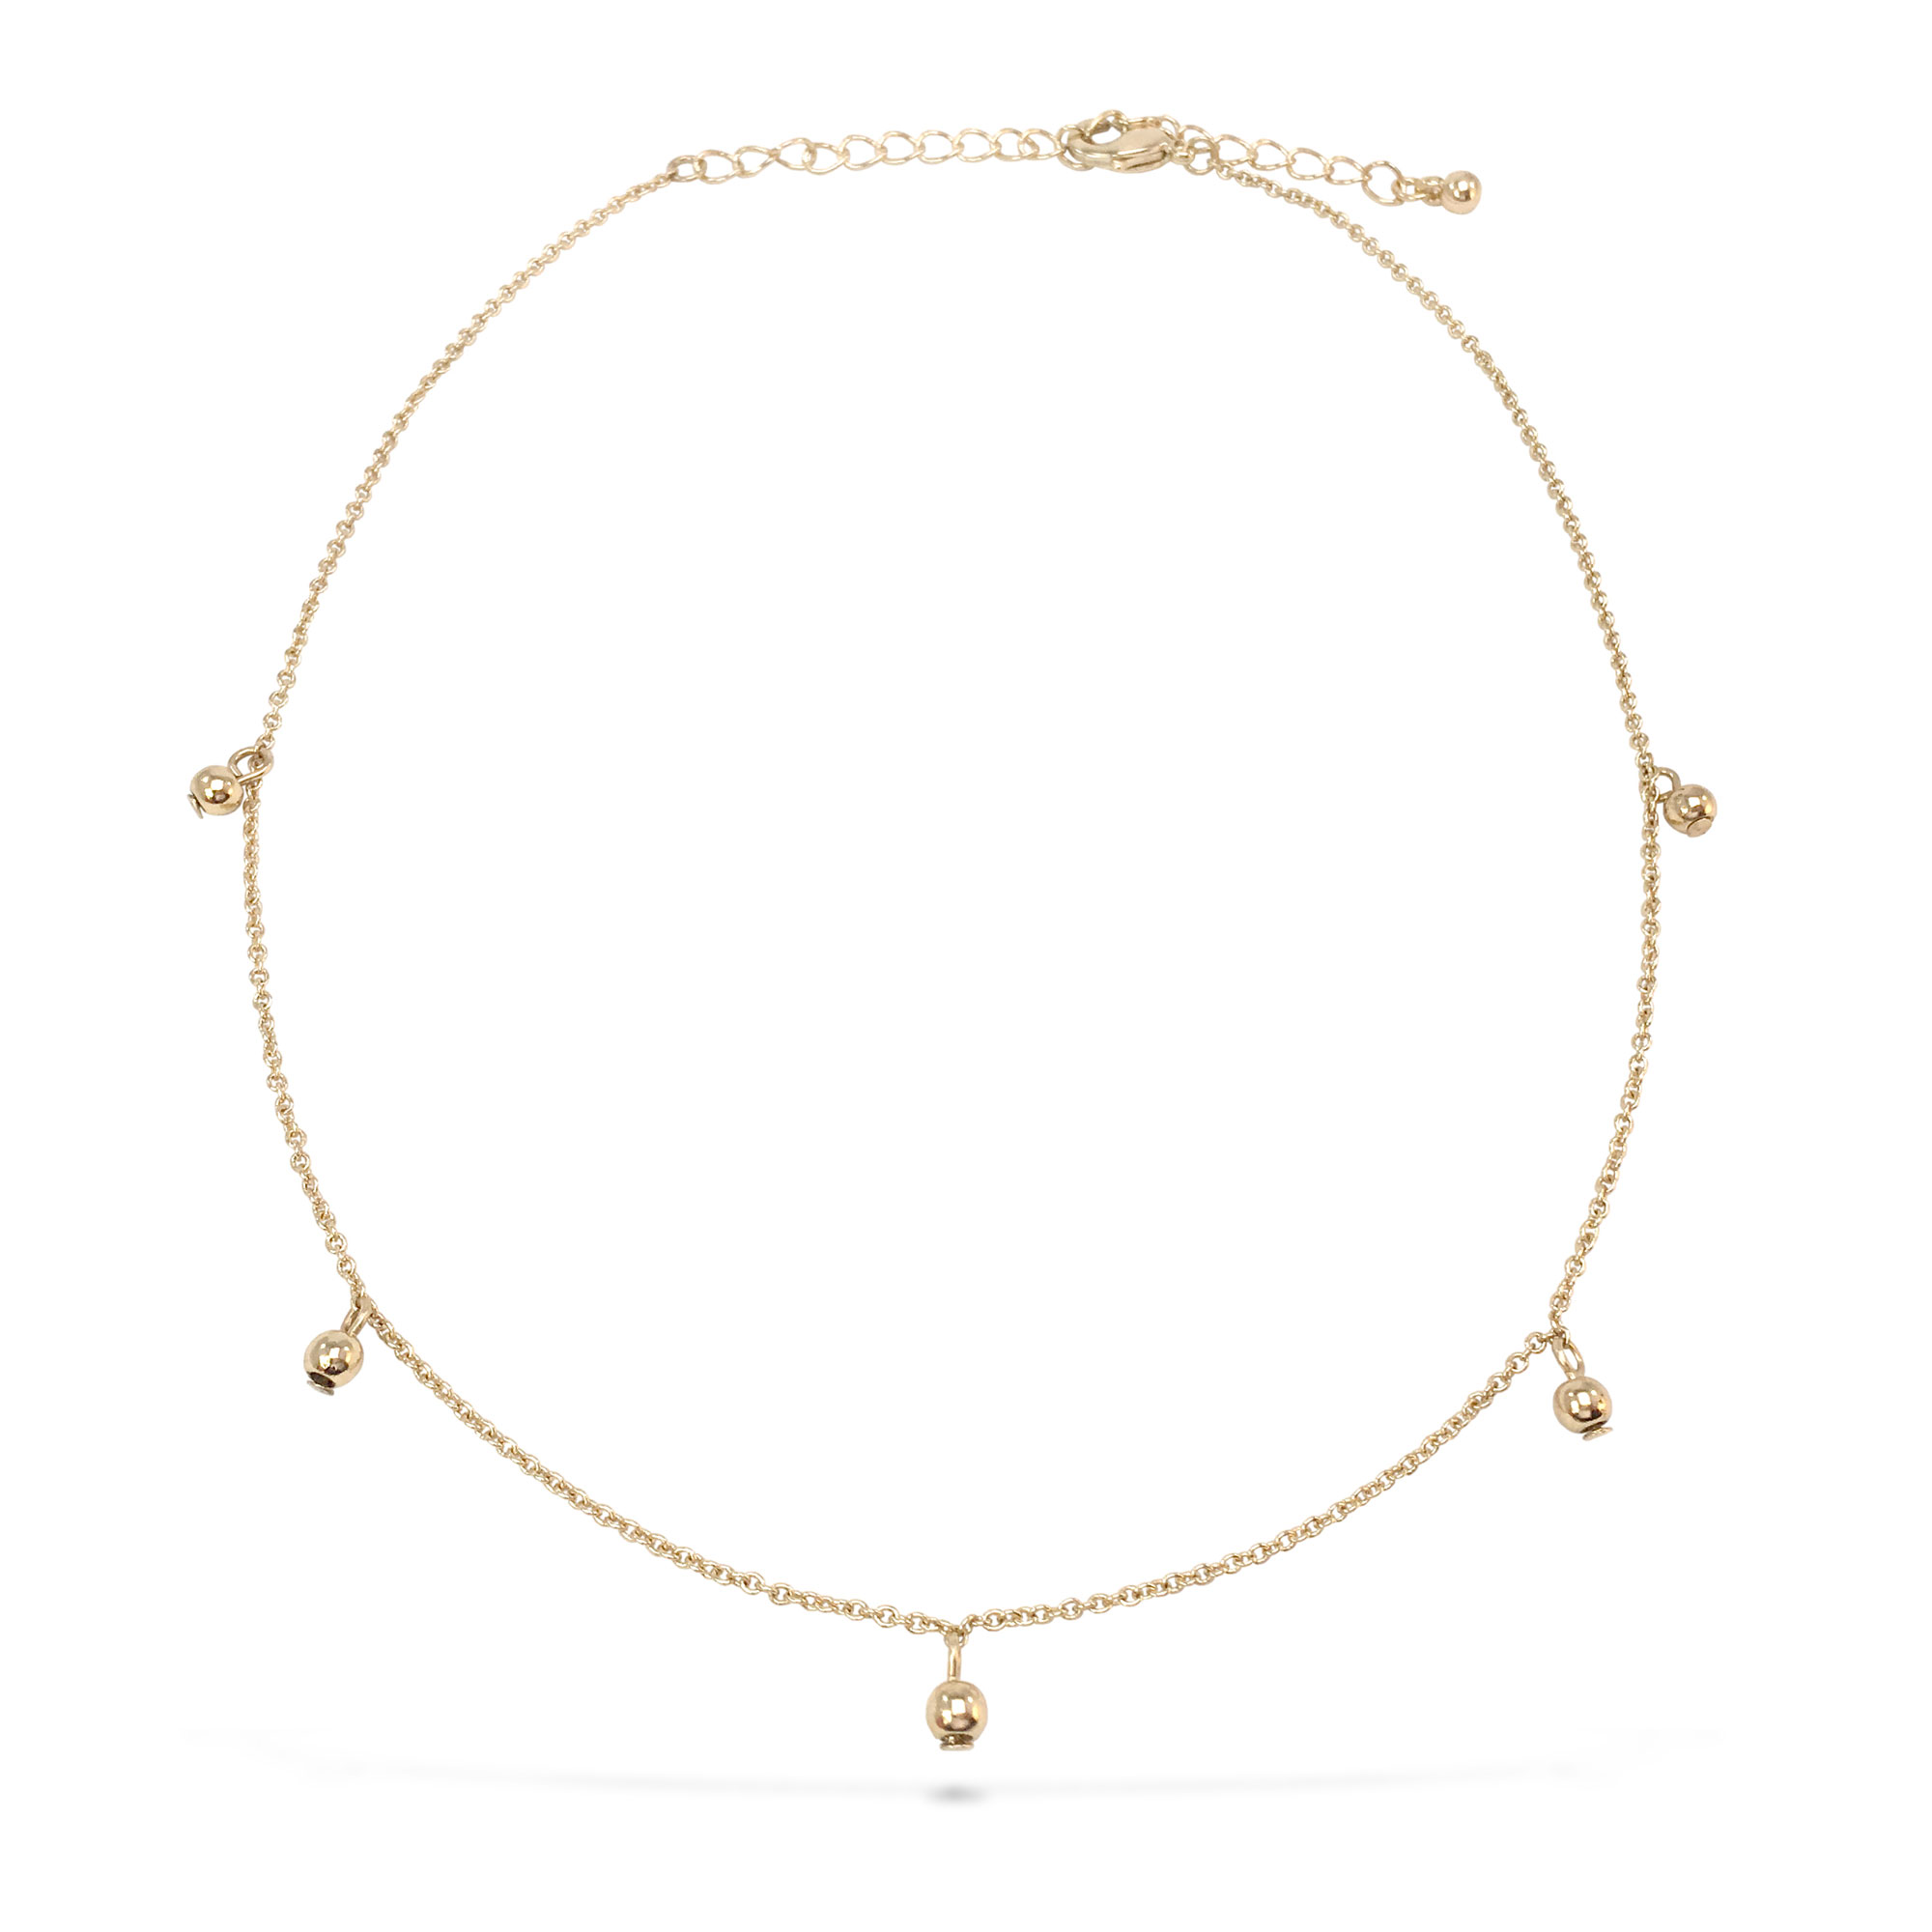 JEWELRY UNDER $50 Gift GuideNecklaceCourtesy Uncommon James